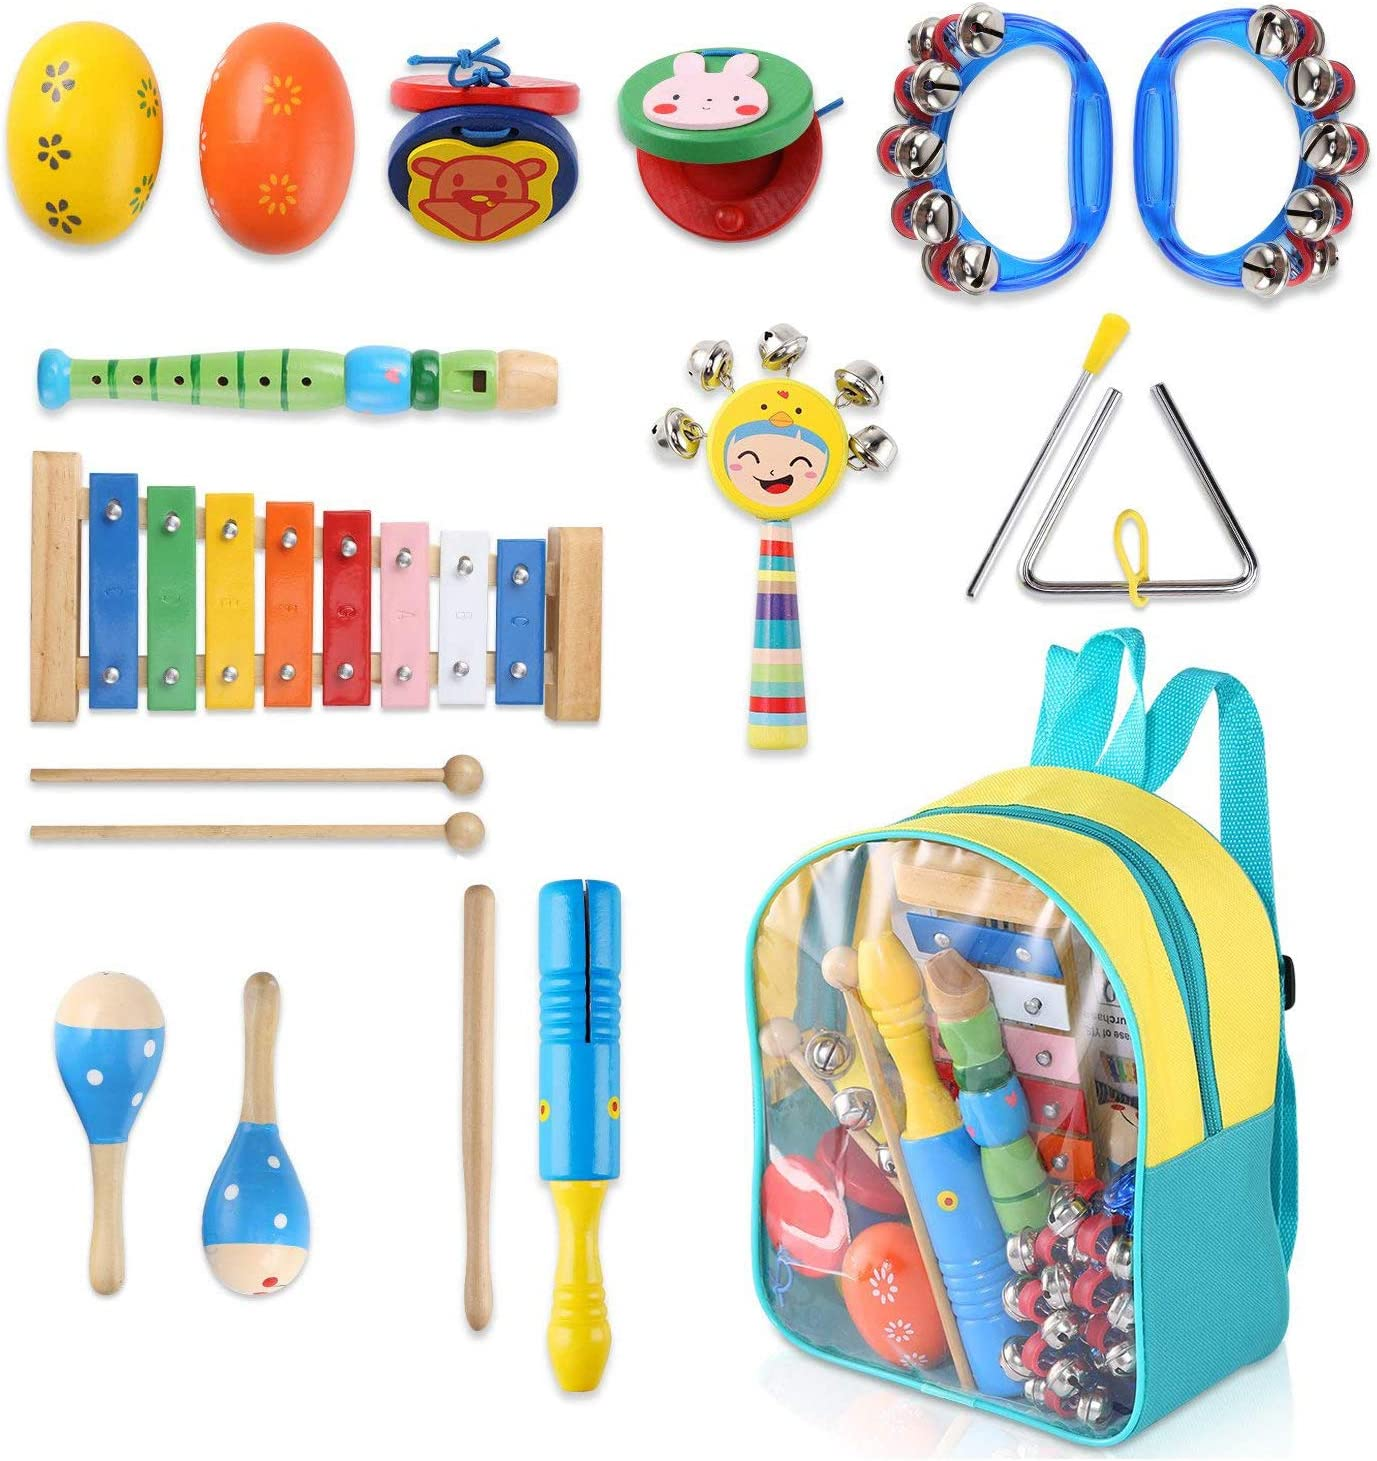 Warooma 13 pcs Musical Instruments Set Music Rhythm Percussion Set Musical Toys with Storage Bag for Boys and Girls Kids Preschool Educational Learning